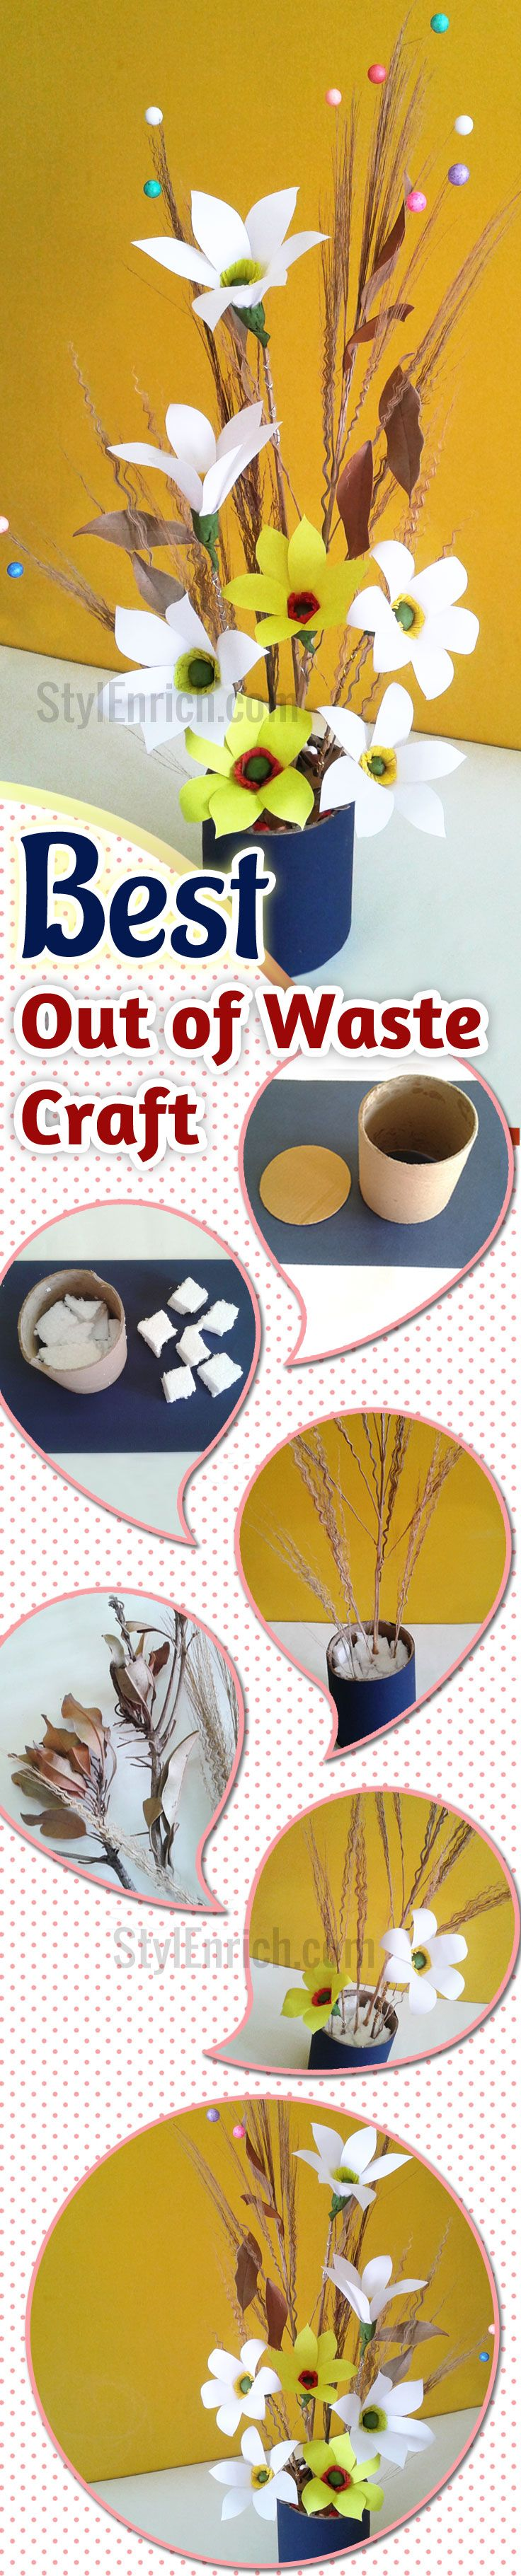 49 best images about best out of waste on pinterest for Craft ideas out of waste